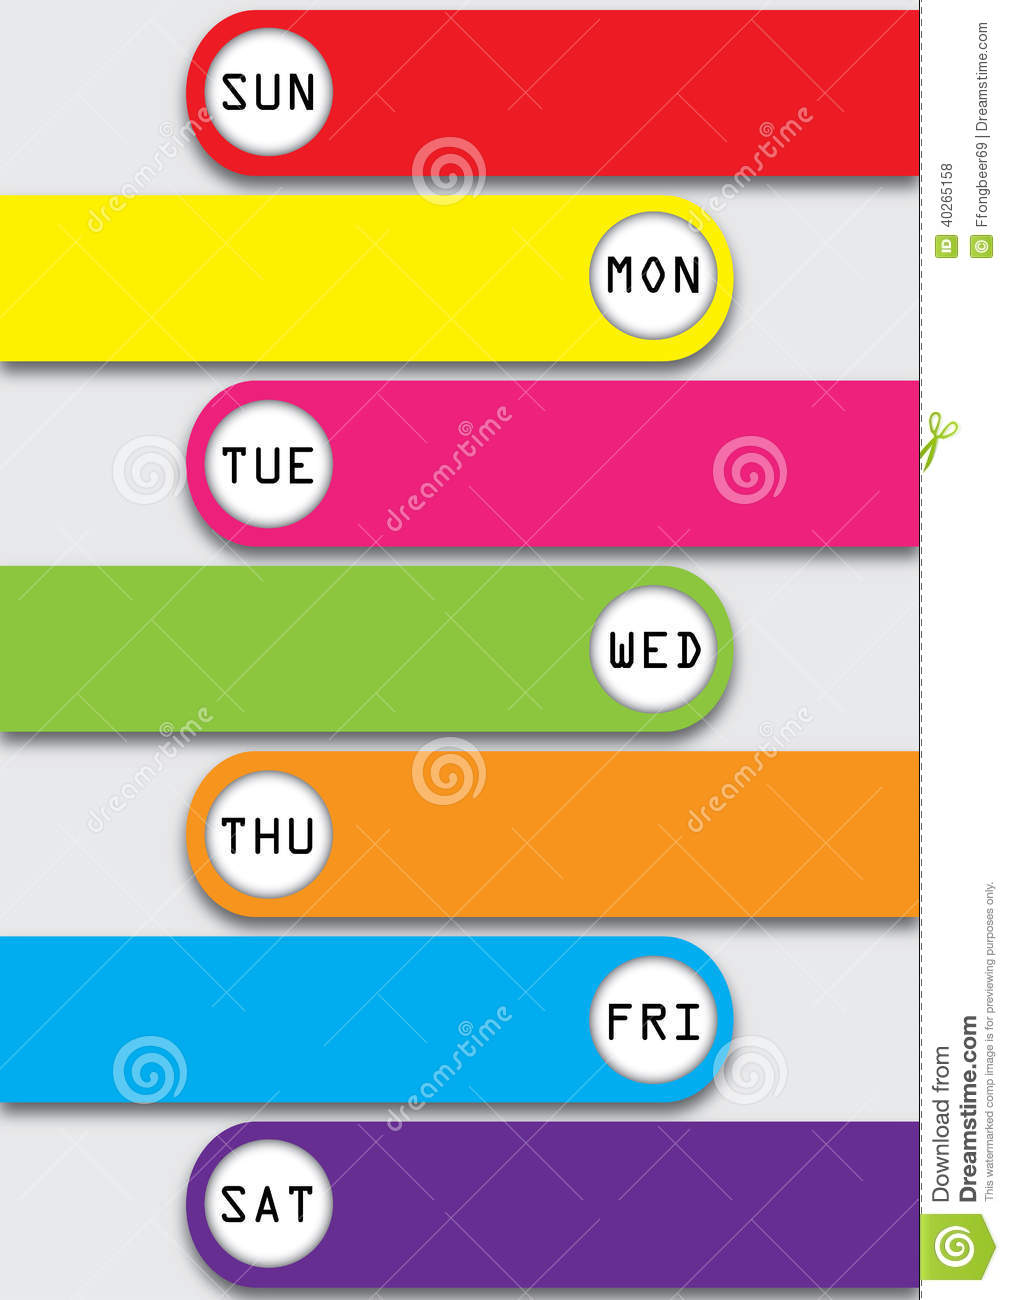 Schedule for the student vector by Ola-Ola - Image #933708 ...